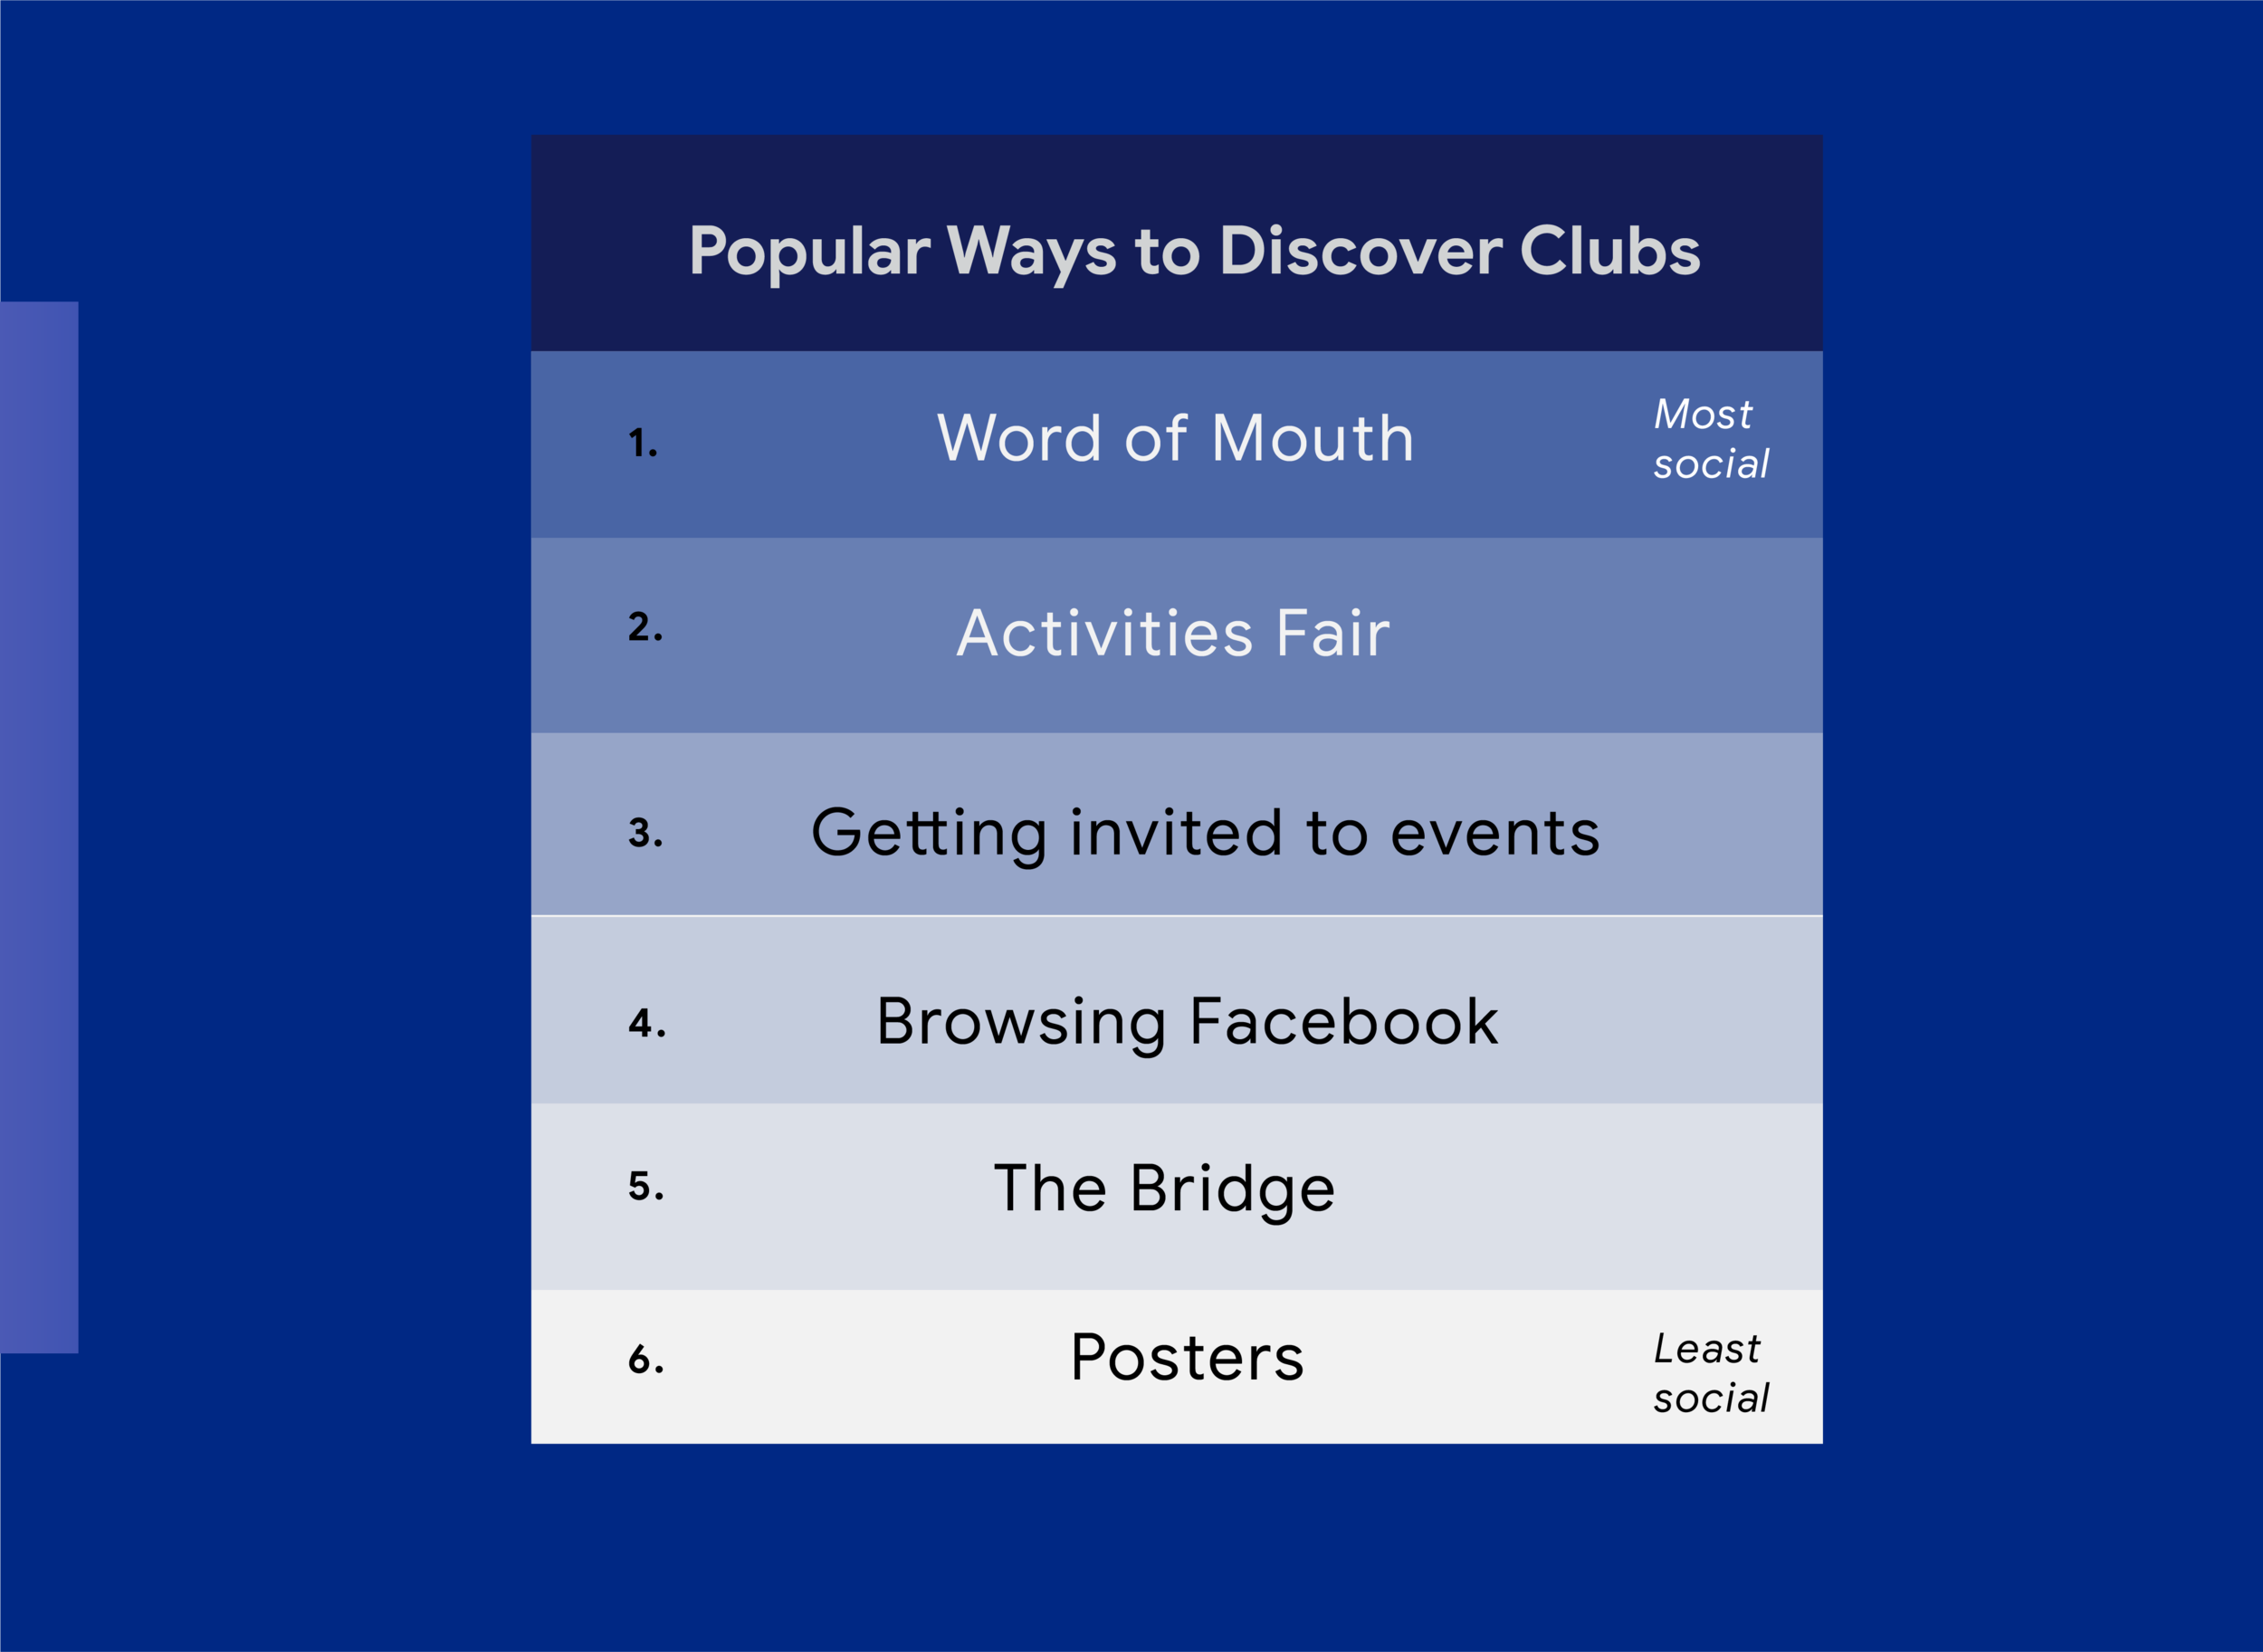 New popular ways to discover clubs@300x.png